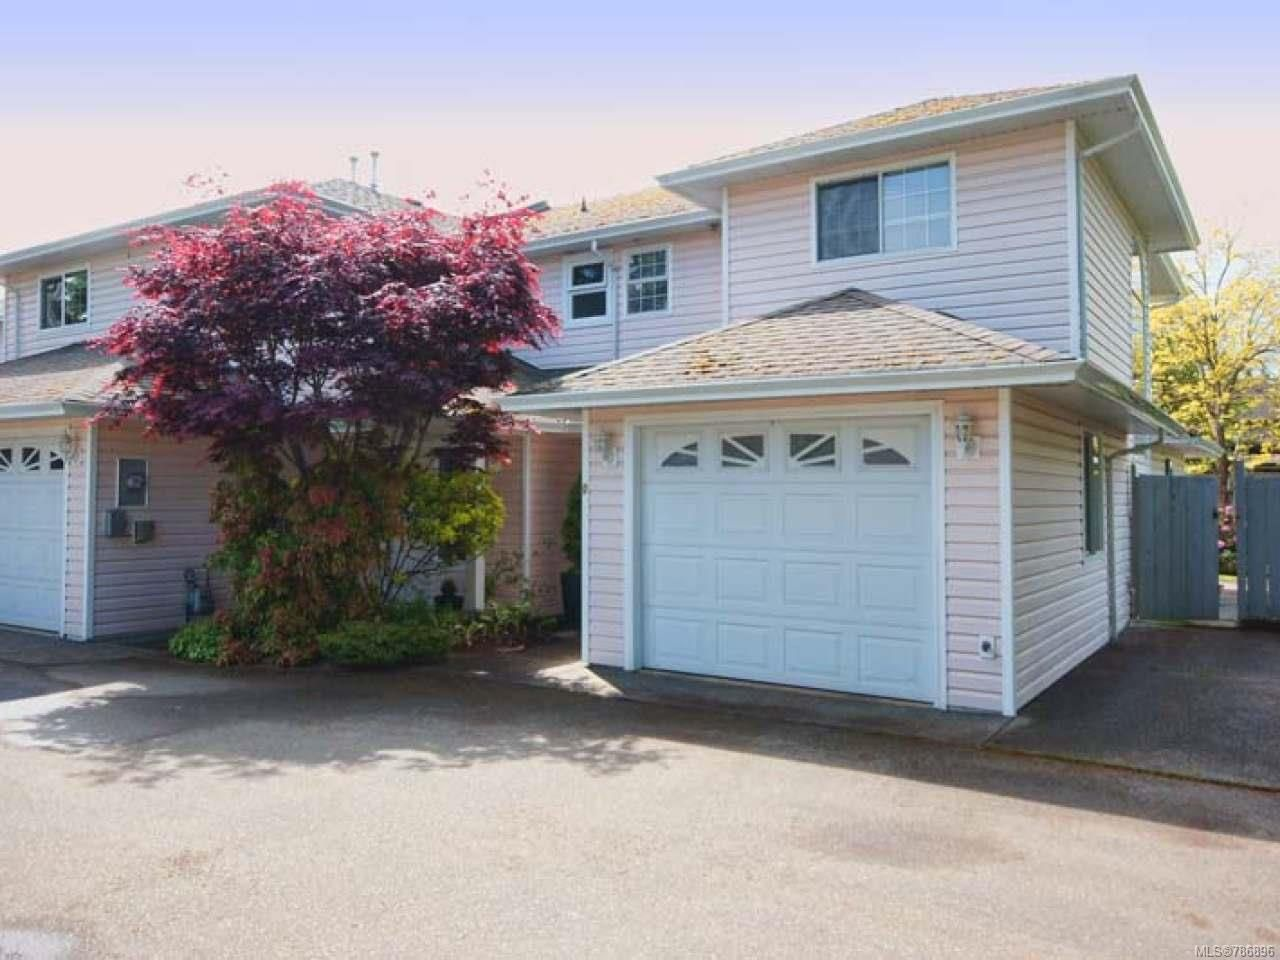 Main Photo: D 249 CORFIELD STREET in PARKSVILLE: PQ Parksville Row/Townhouse for sale (Parksville/Qualicum)  : MLS®# 786896